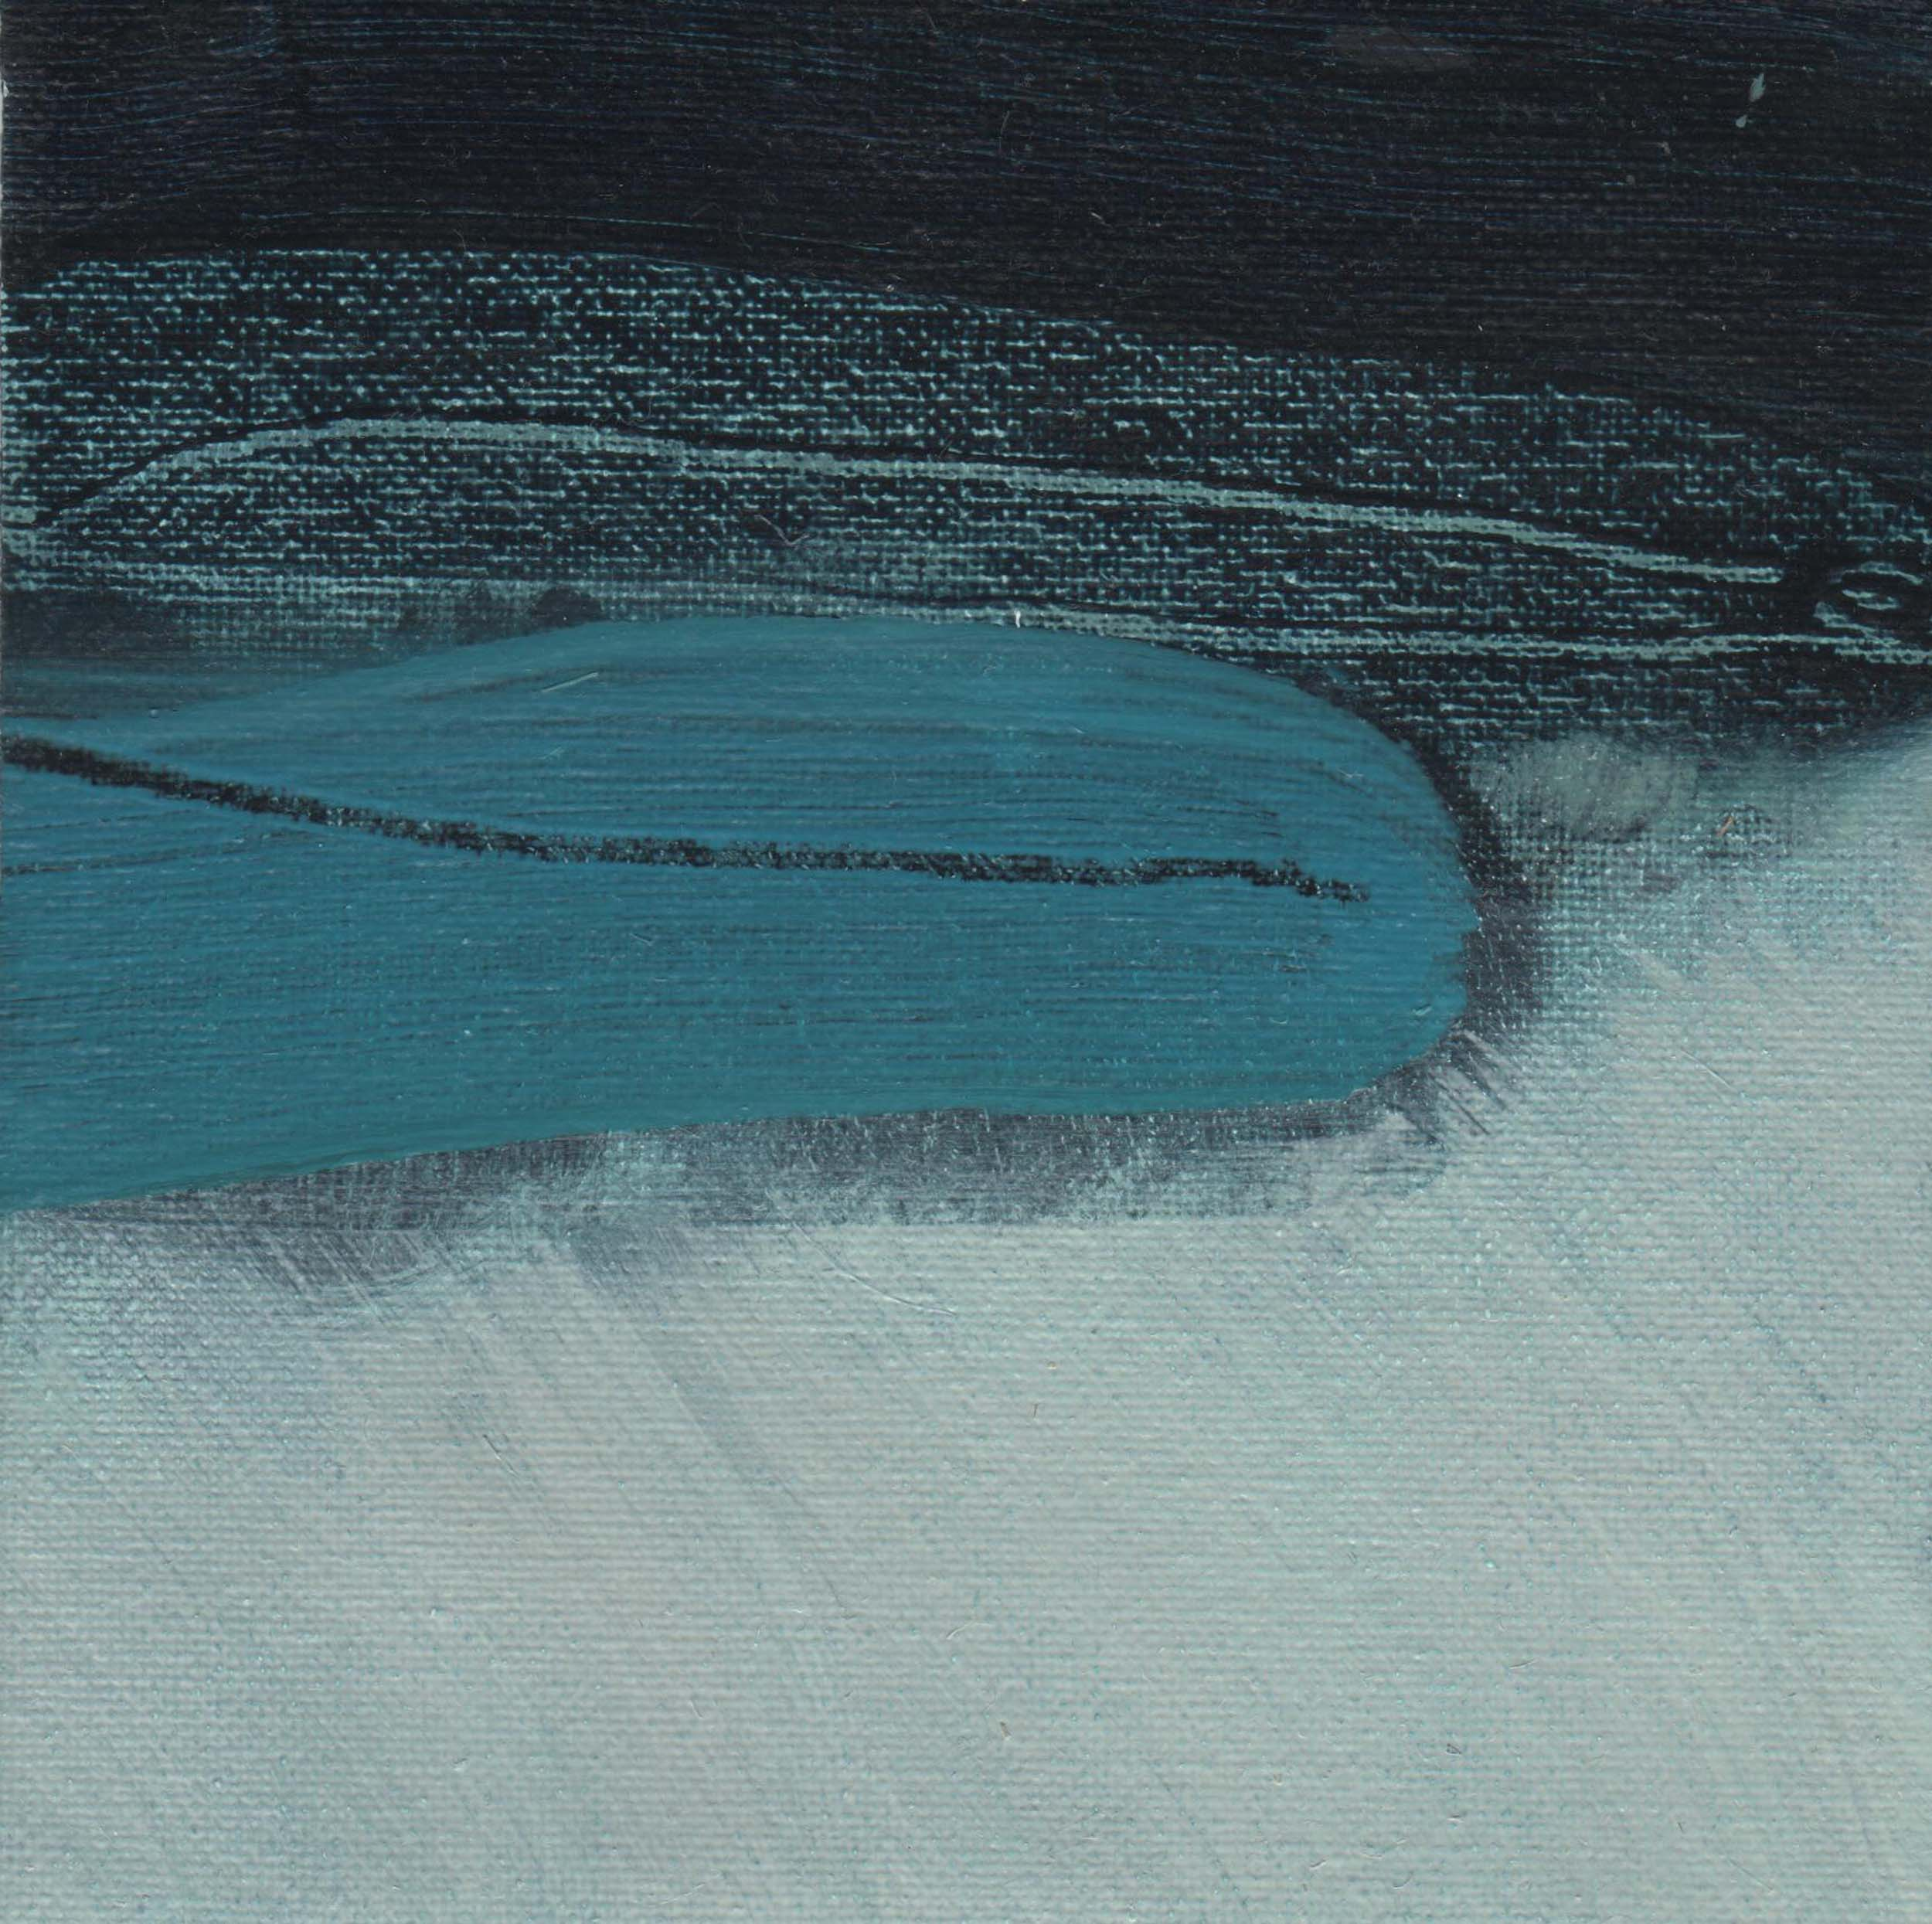 Leah Beggs 2008 - Night Pool -Oil on Unstretched Canvas-15 x 15 cm_sml.jpg